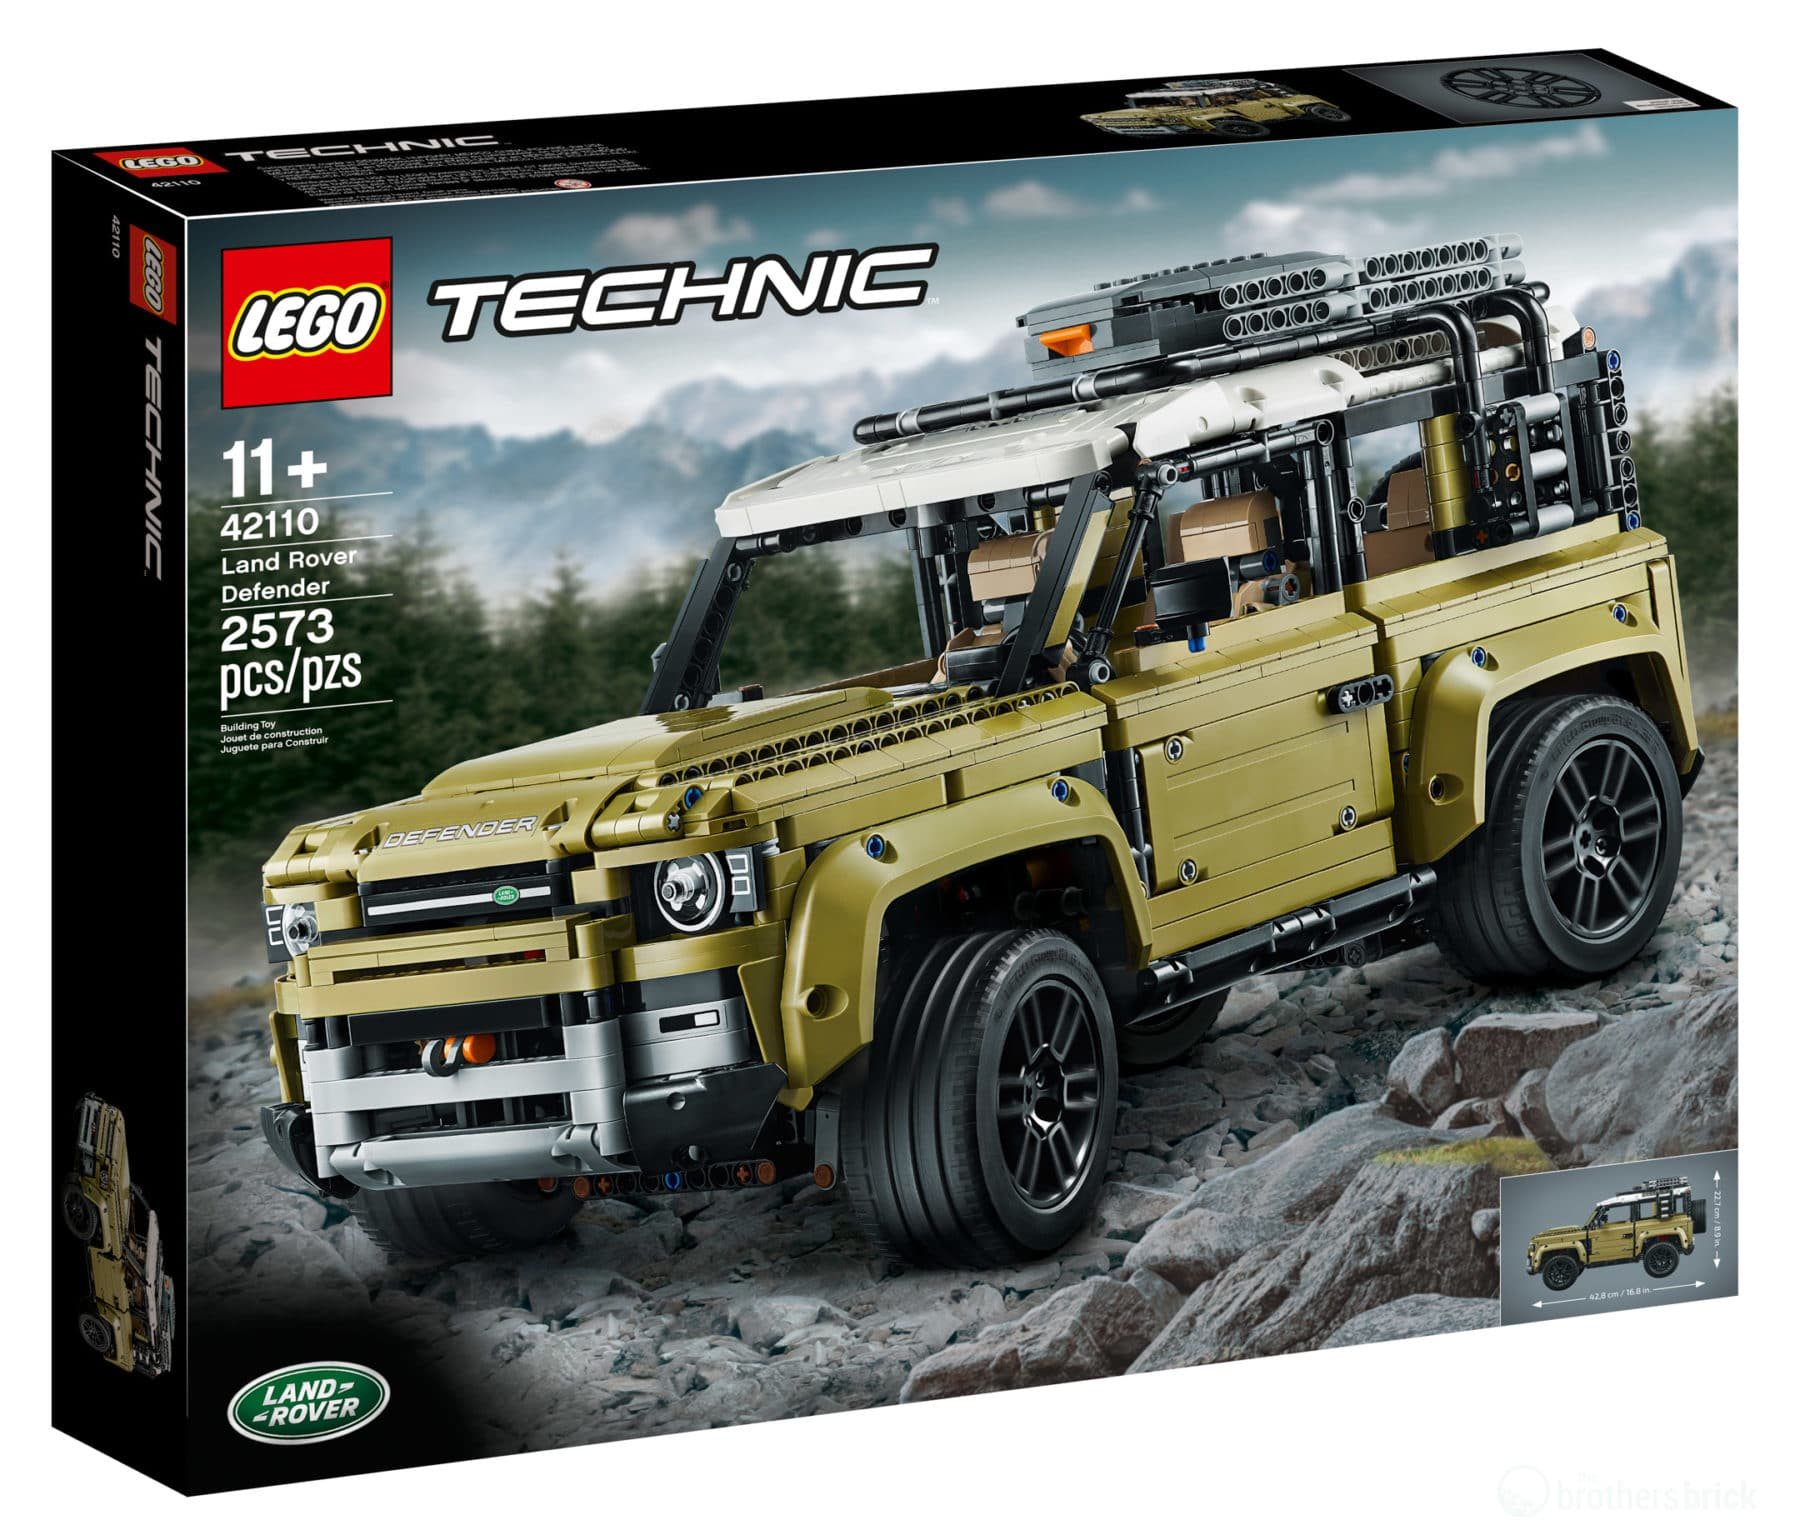 LEGO Technic 42110 Land Rover Defender Box